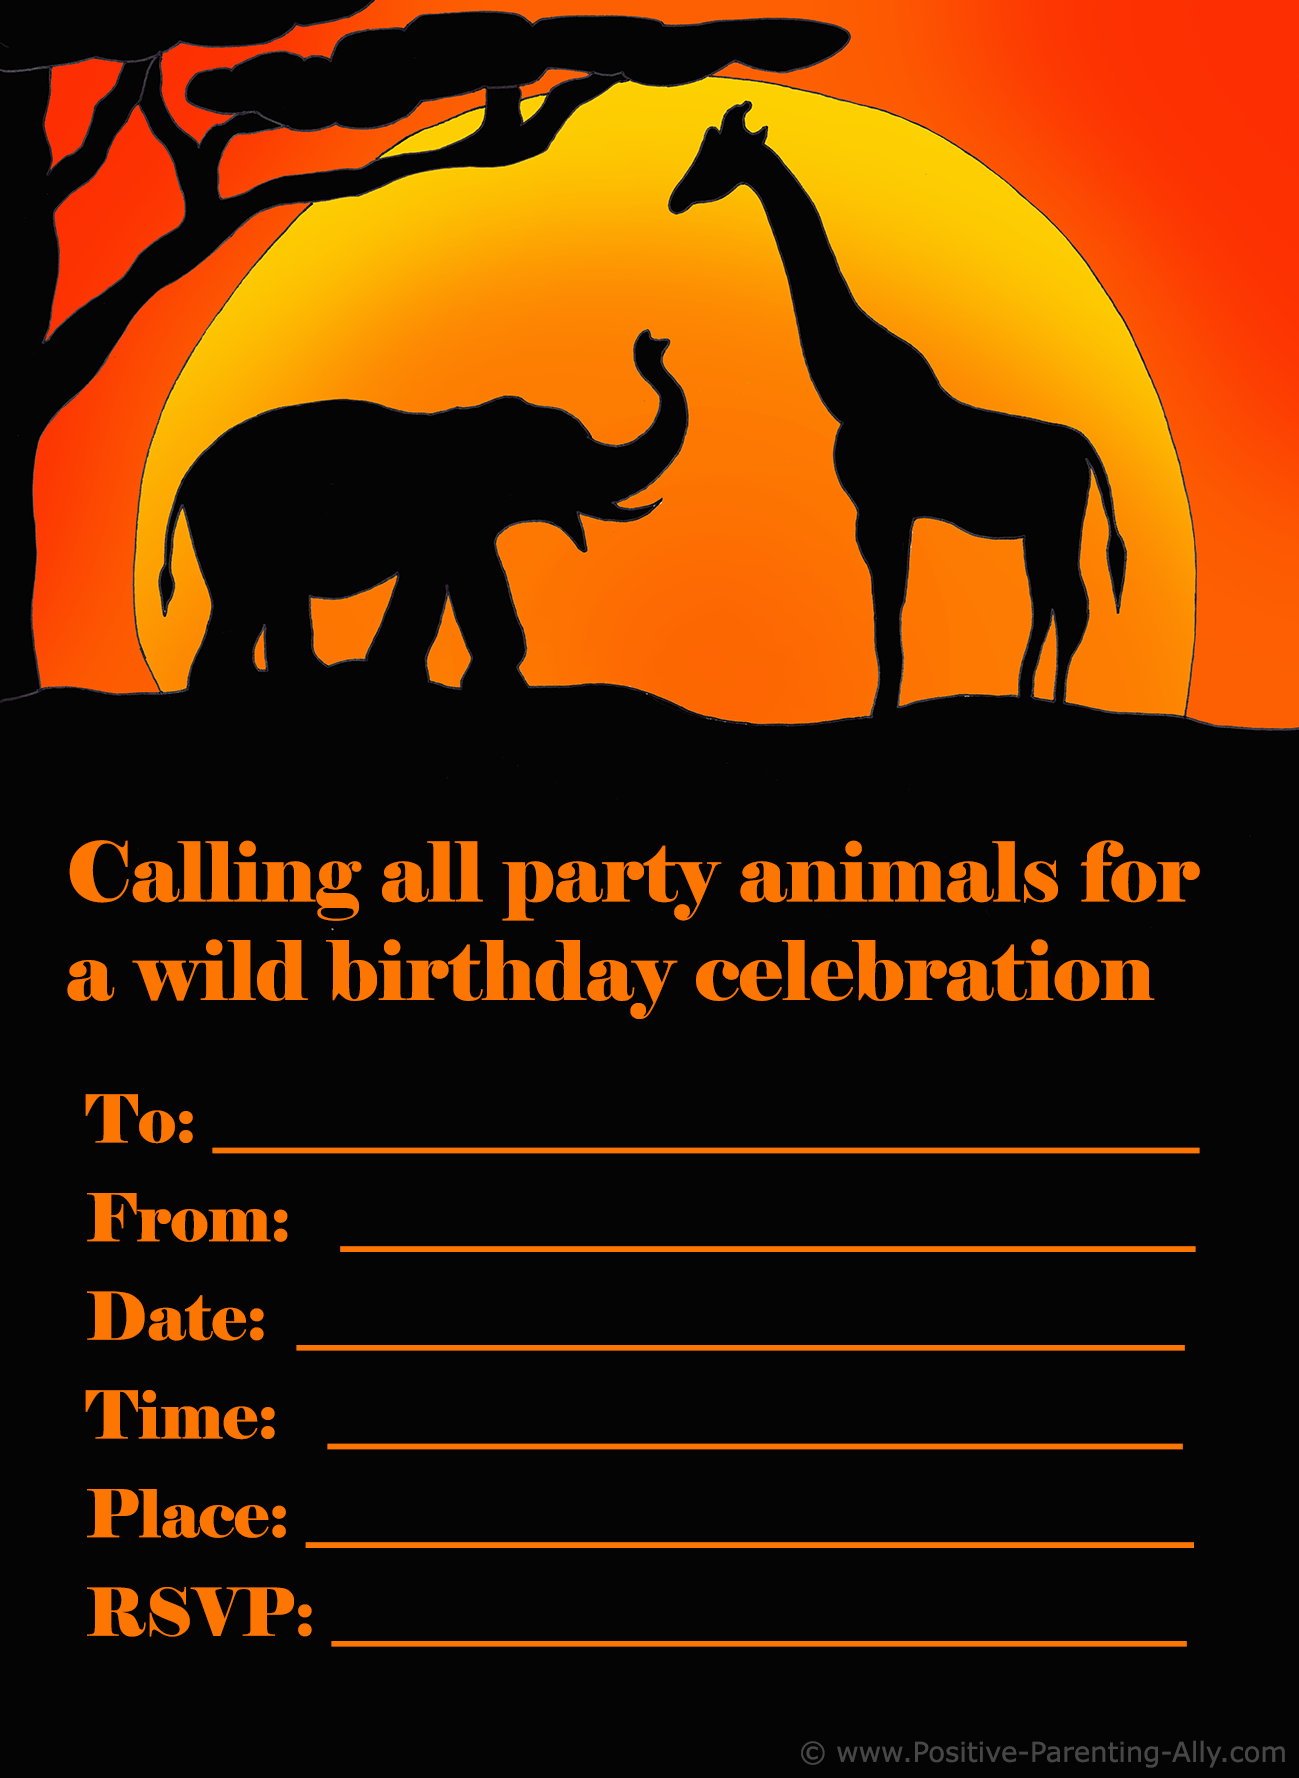 Printable kids birthday invite with African safari theme. An elephant and giraffe silhouette.